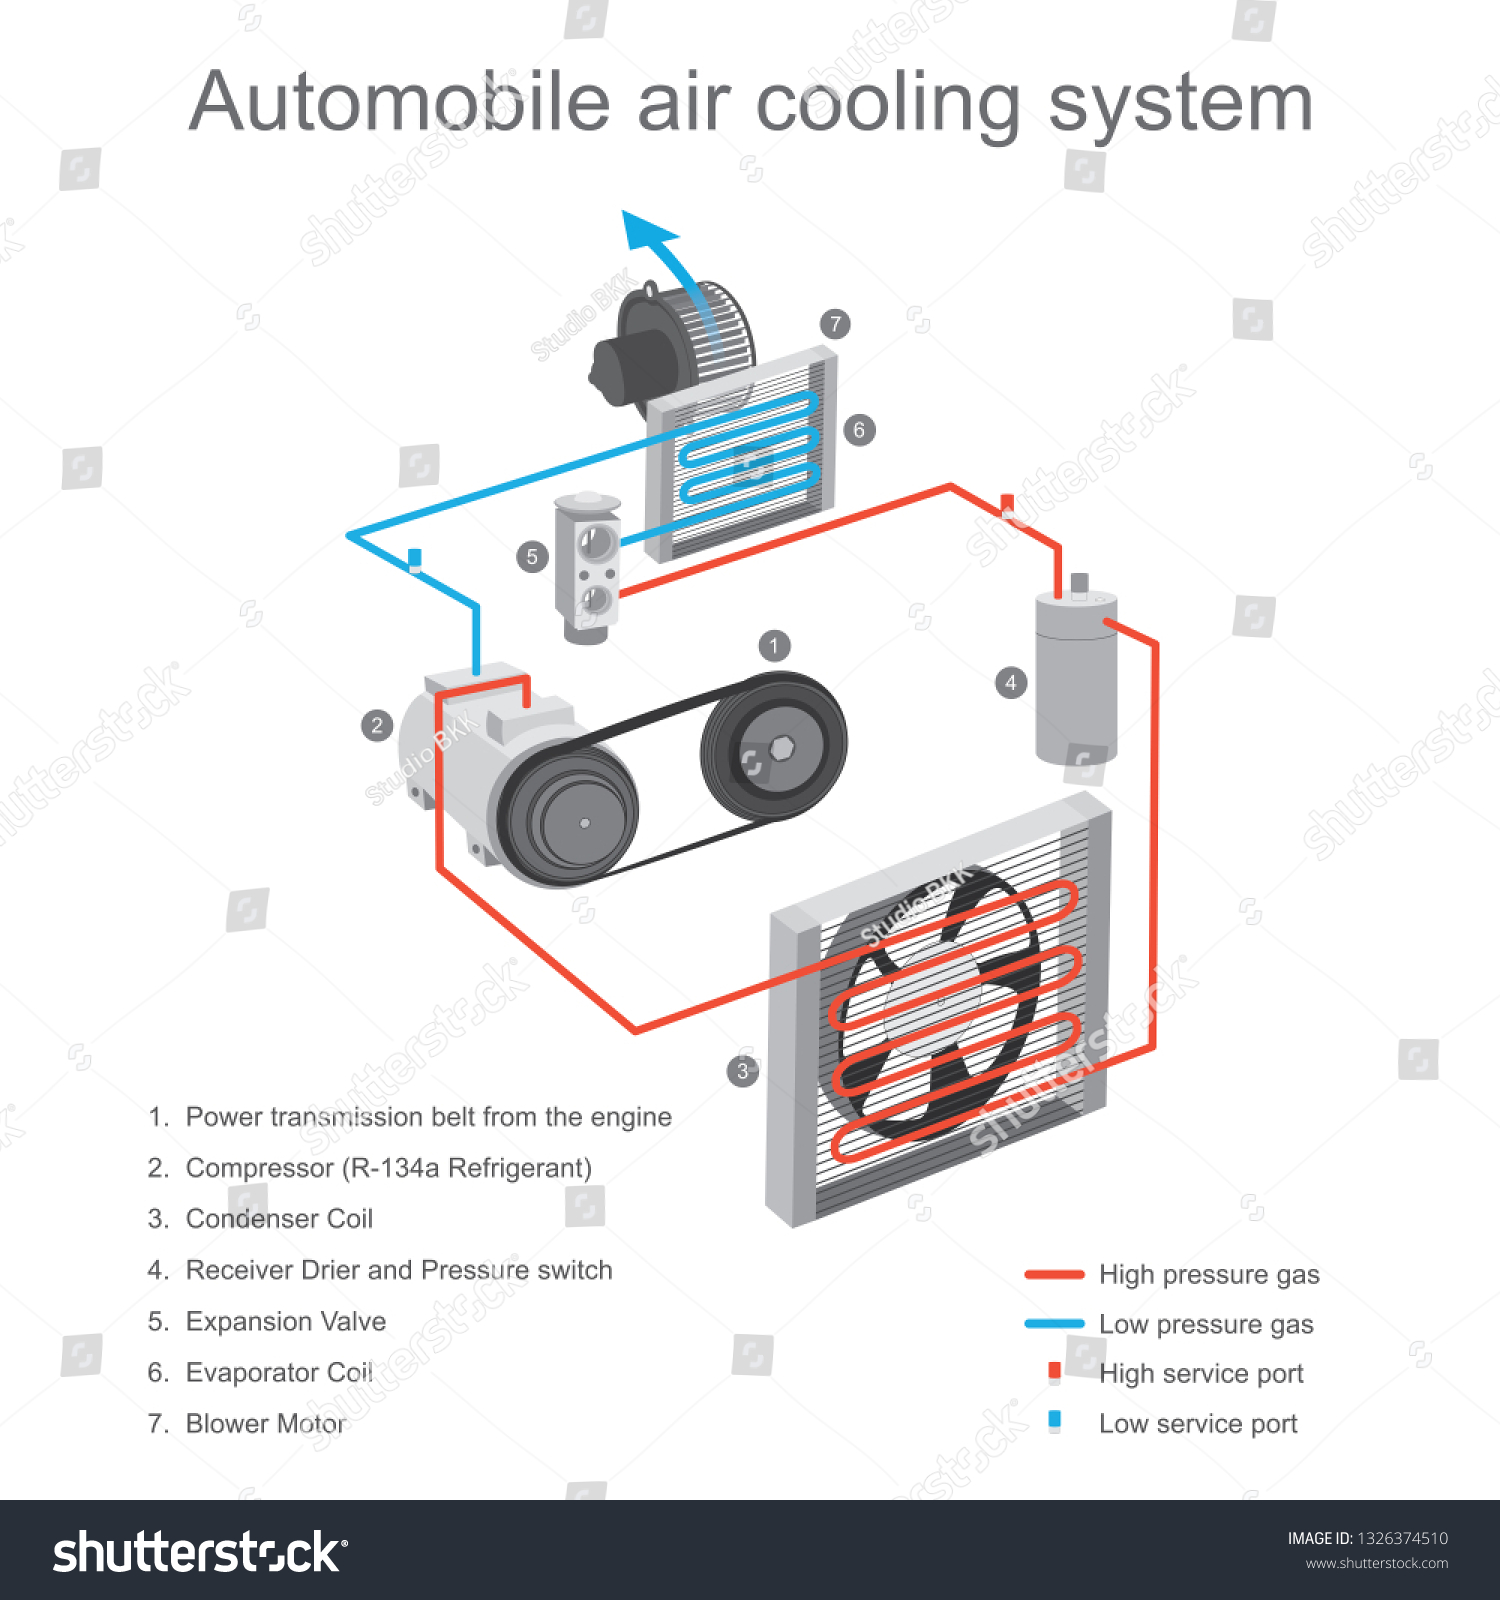 hight resolution of the air cooling system in the car cabin is primarily used to remove heat from the